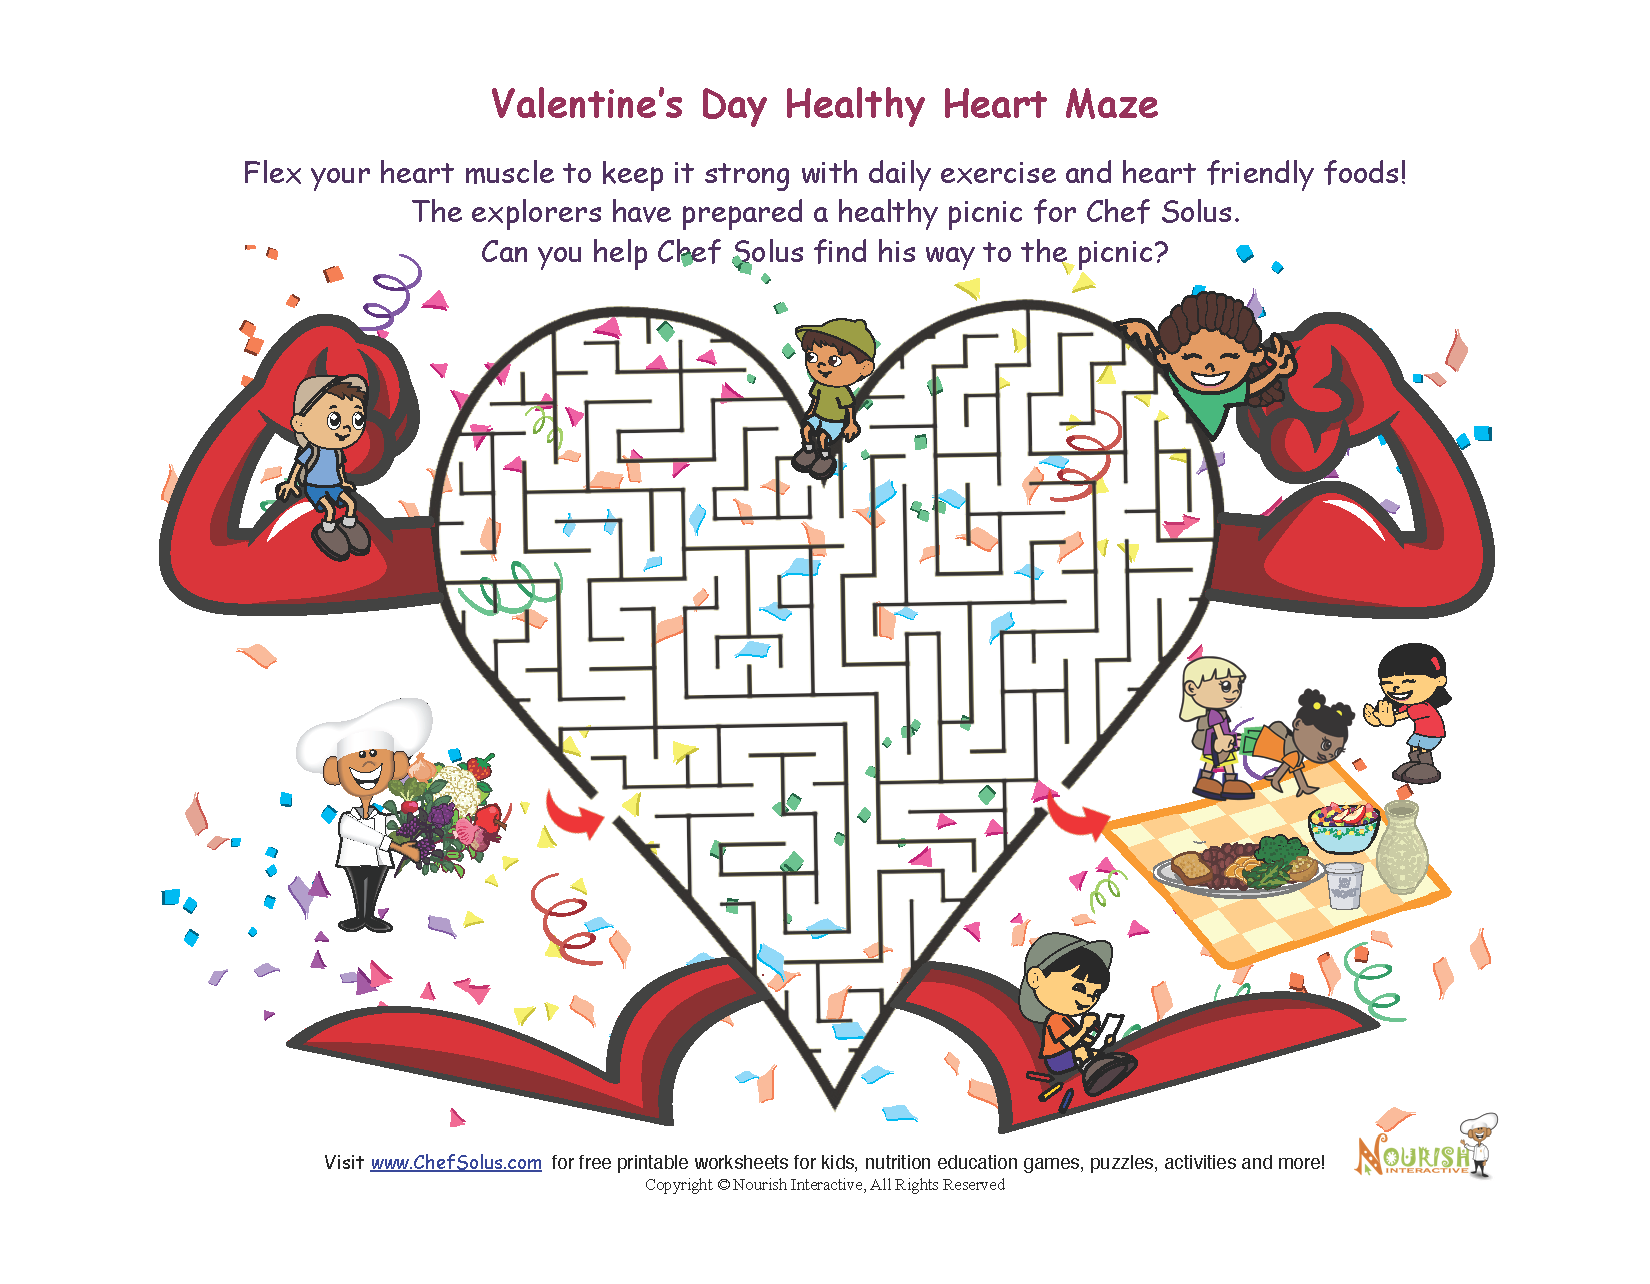 Challenge your kids to a heart-healthy Valentine's Day maze!